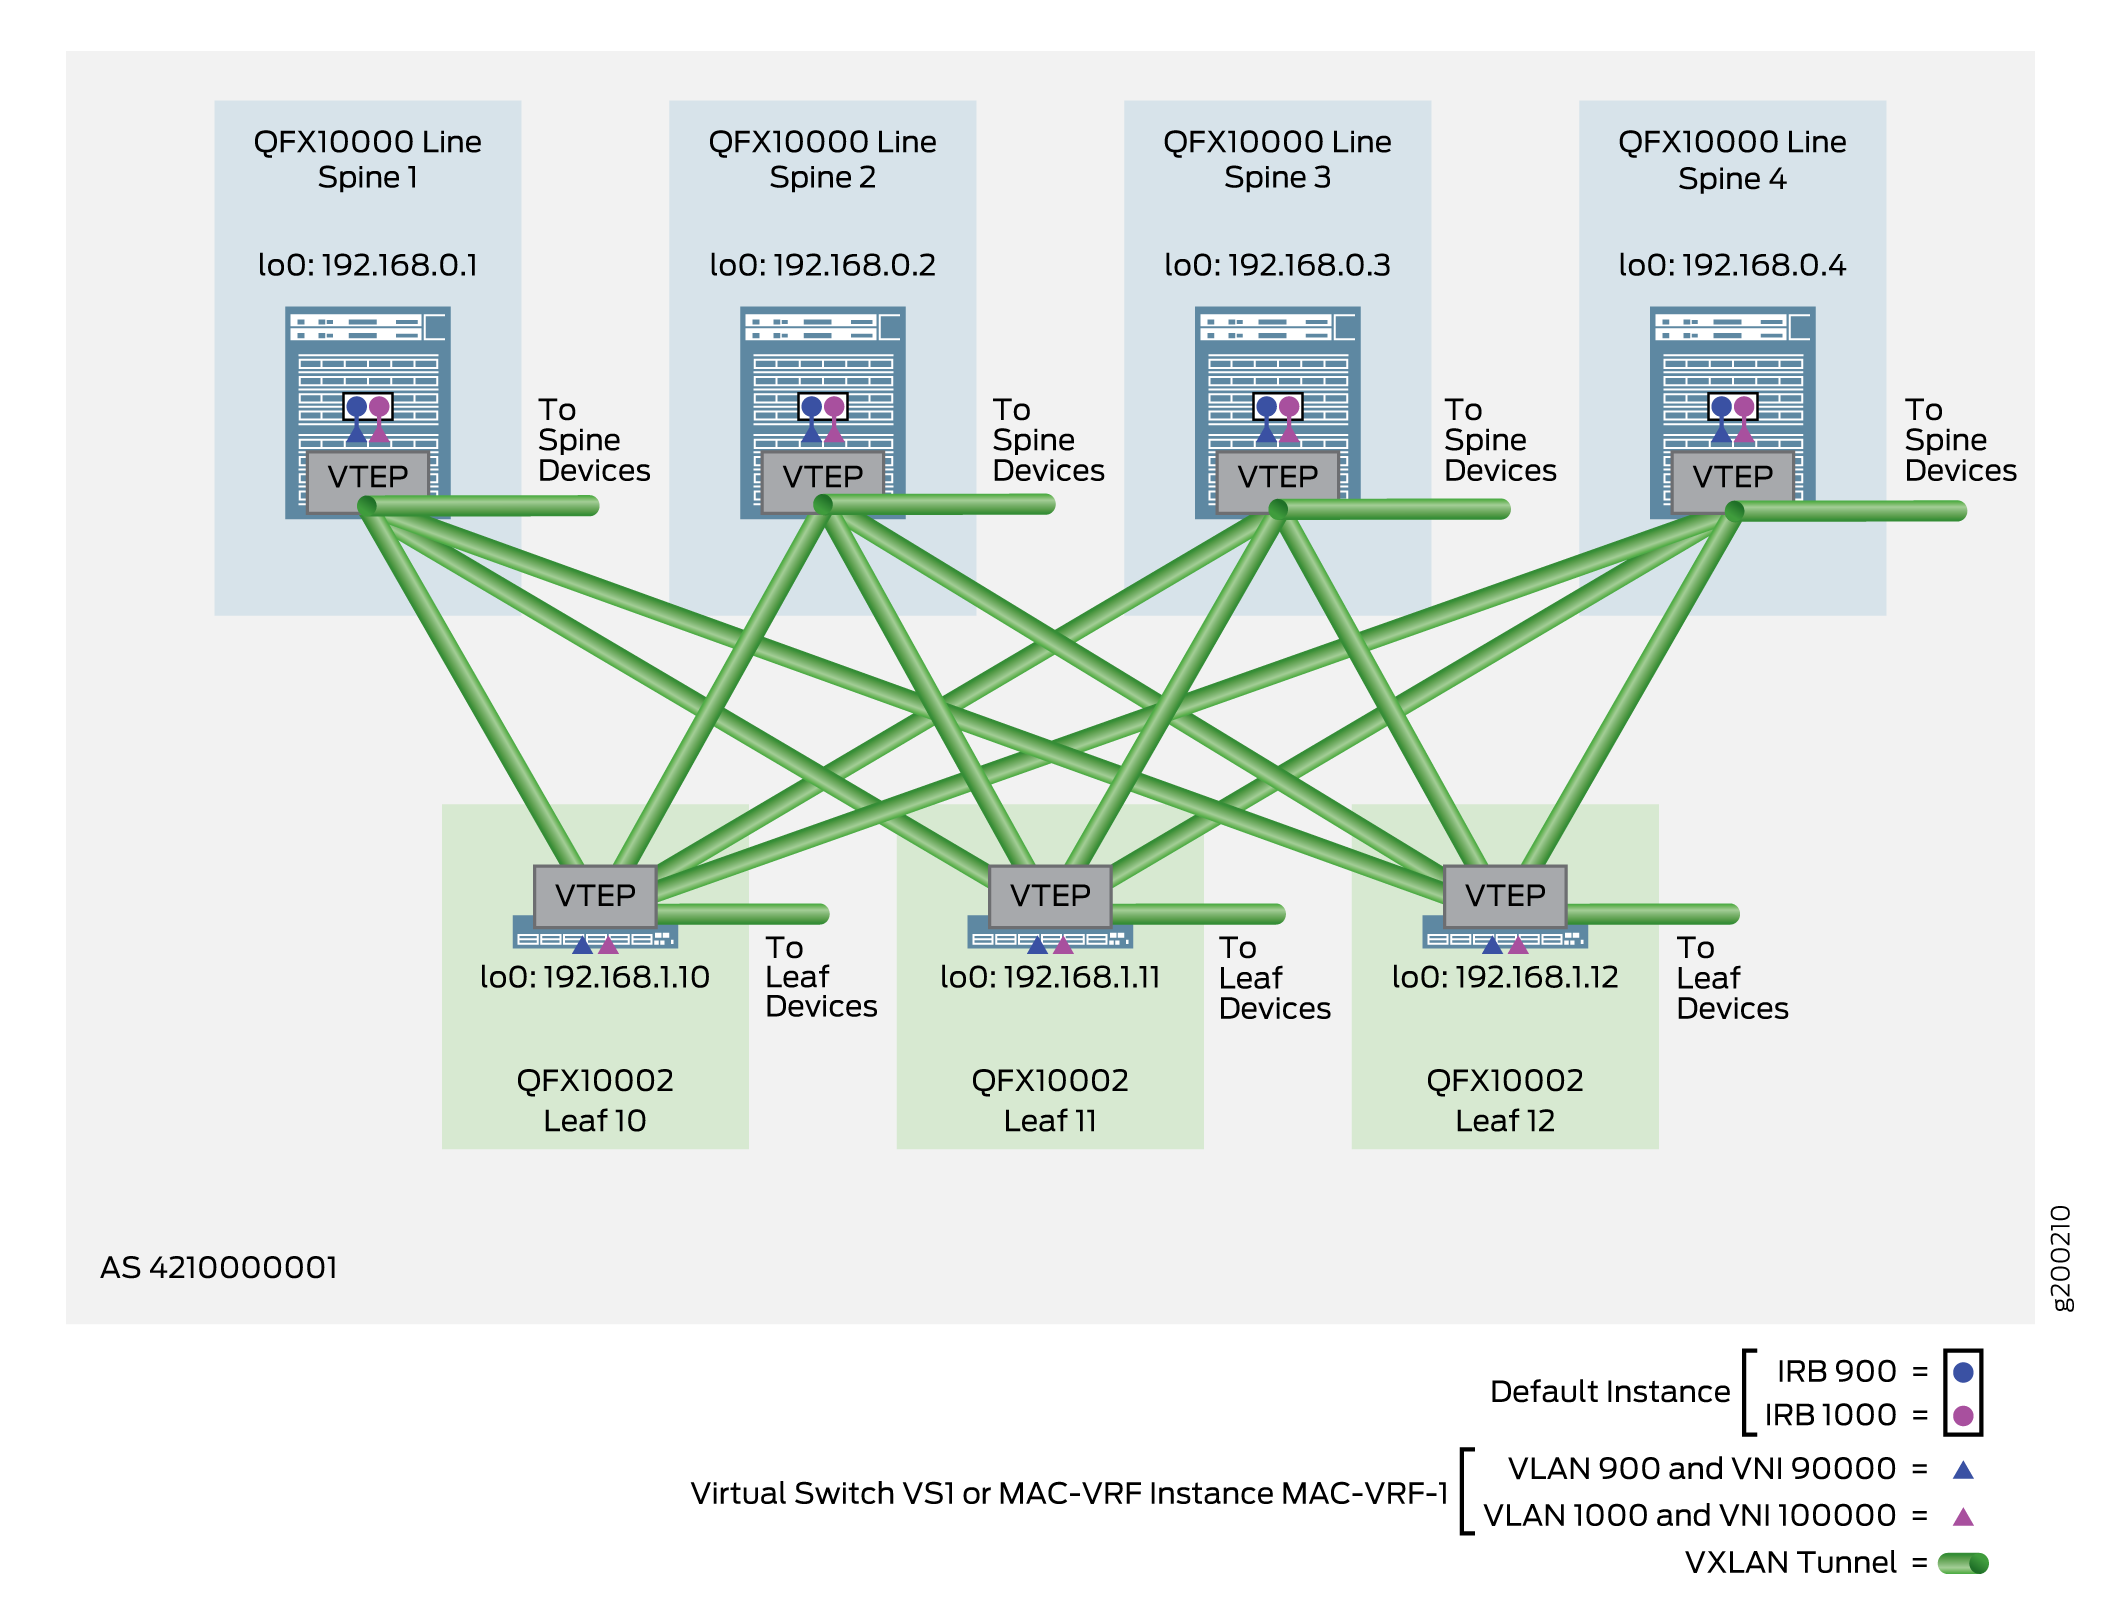 VLAN-Aware Centrally-Routed Bridging Overlay — Virtual Switch Instance